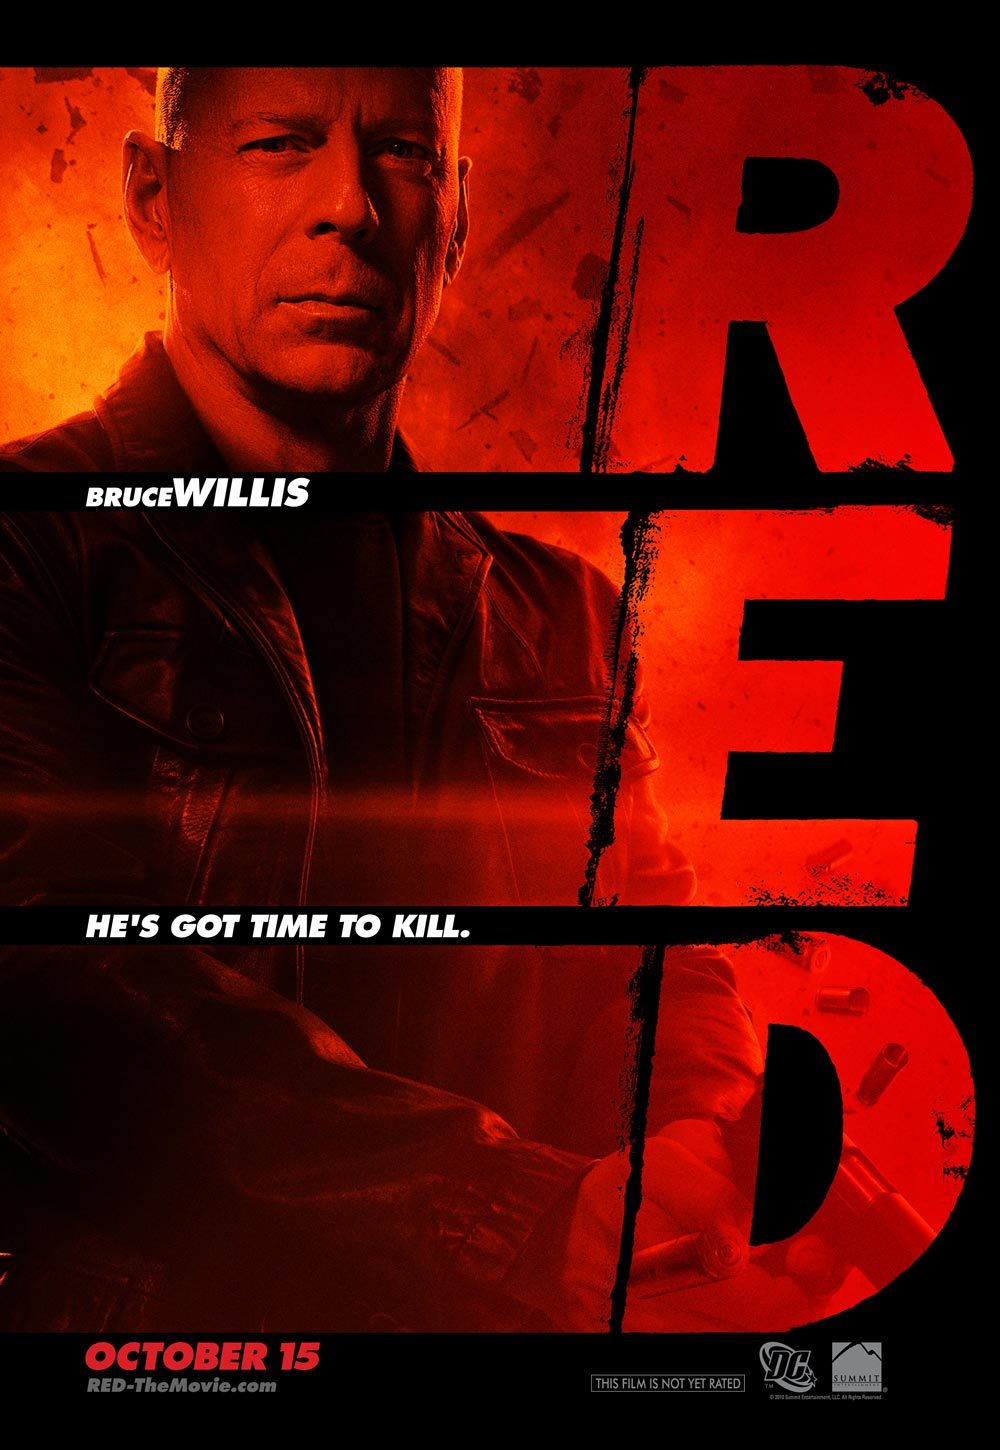 red_movie_poster_01.jpg